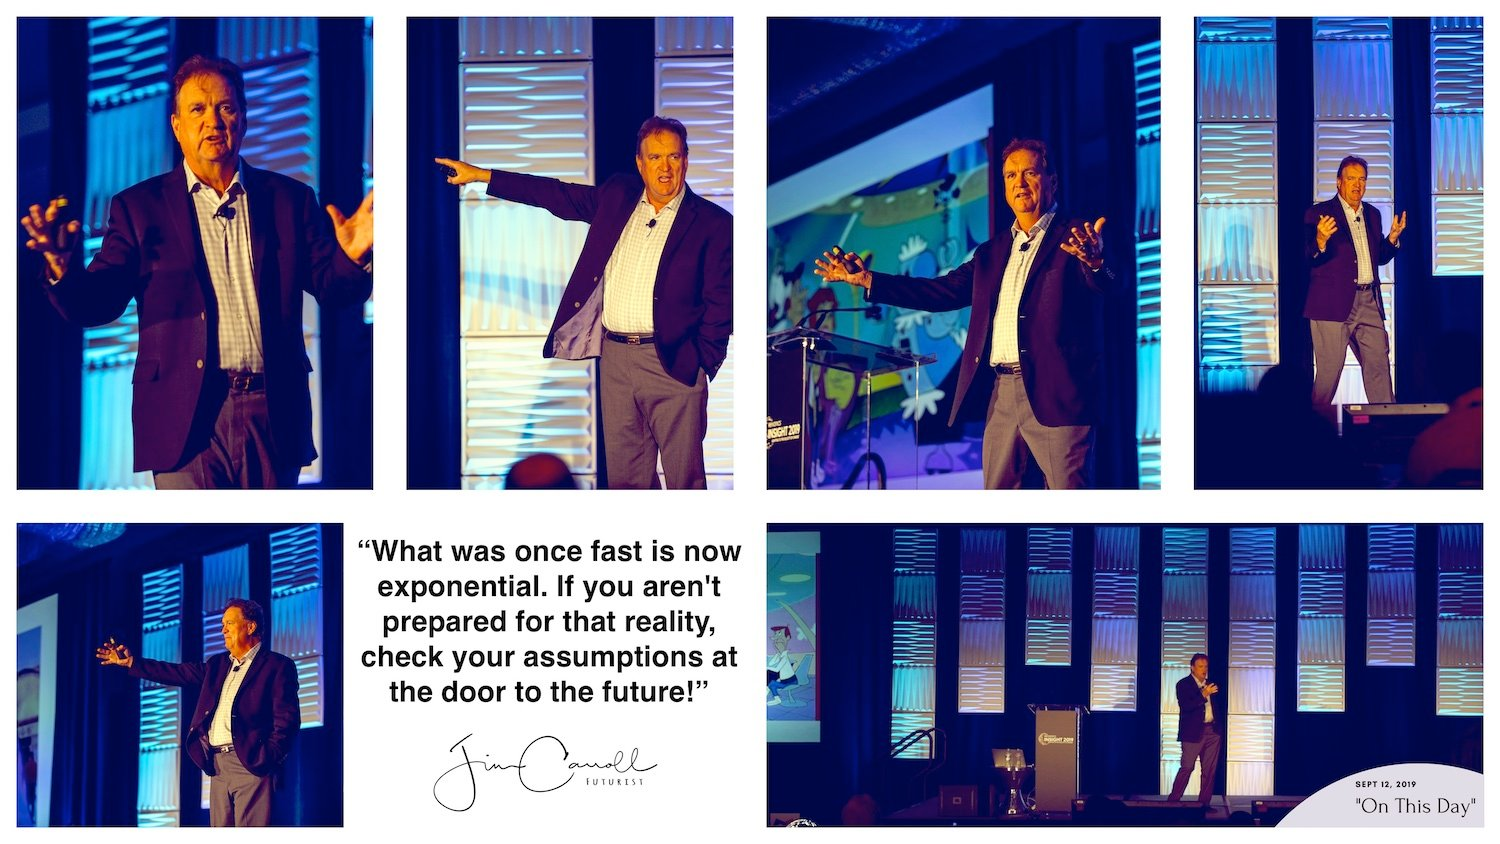 """Daily Inspiration: """"What was once fast is now exponential. If you aren't prepared for that reality, check your assumptions at the door to the future!"""""""